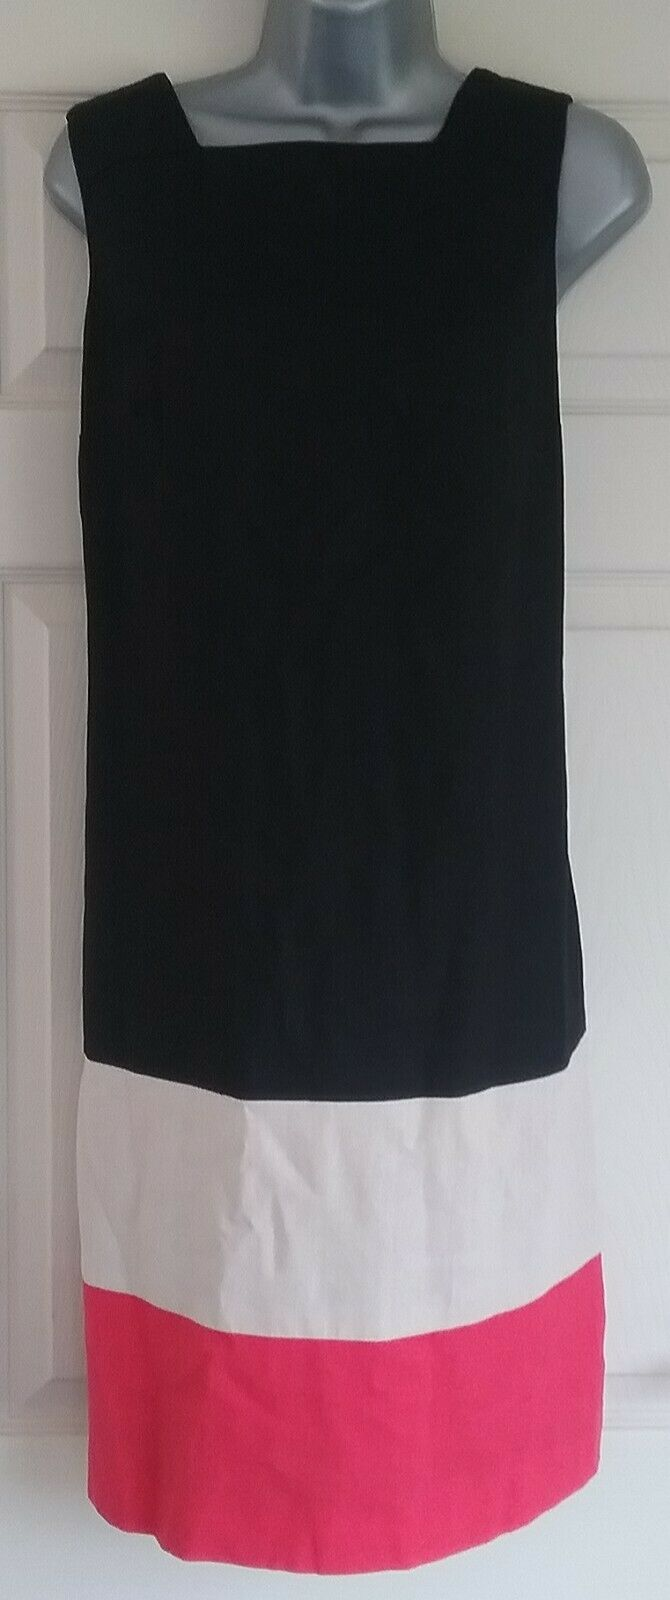 Colourblock black/beige/red Linen blend Shift Dress, Size 14, Smart Work